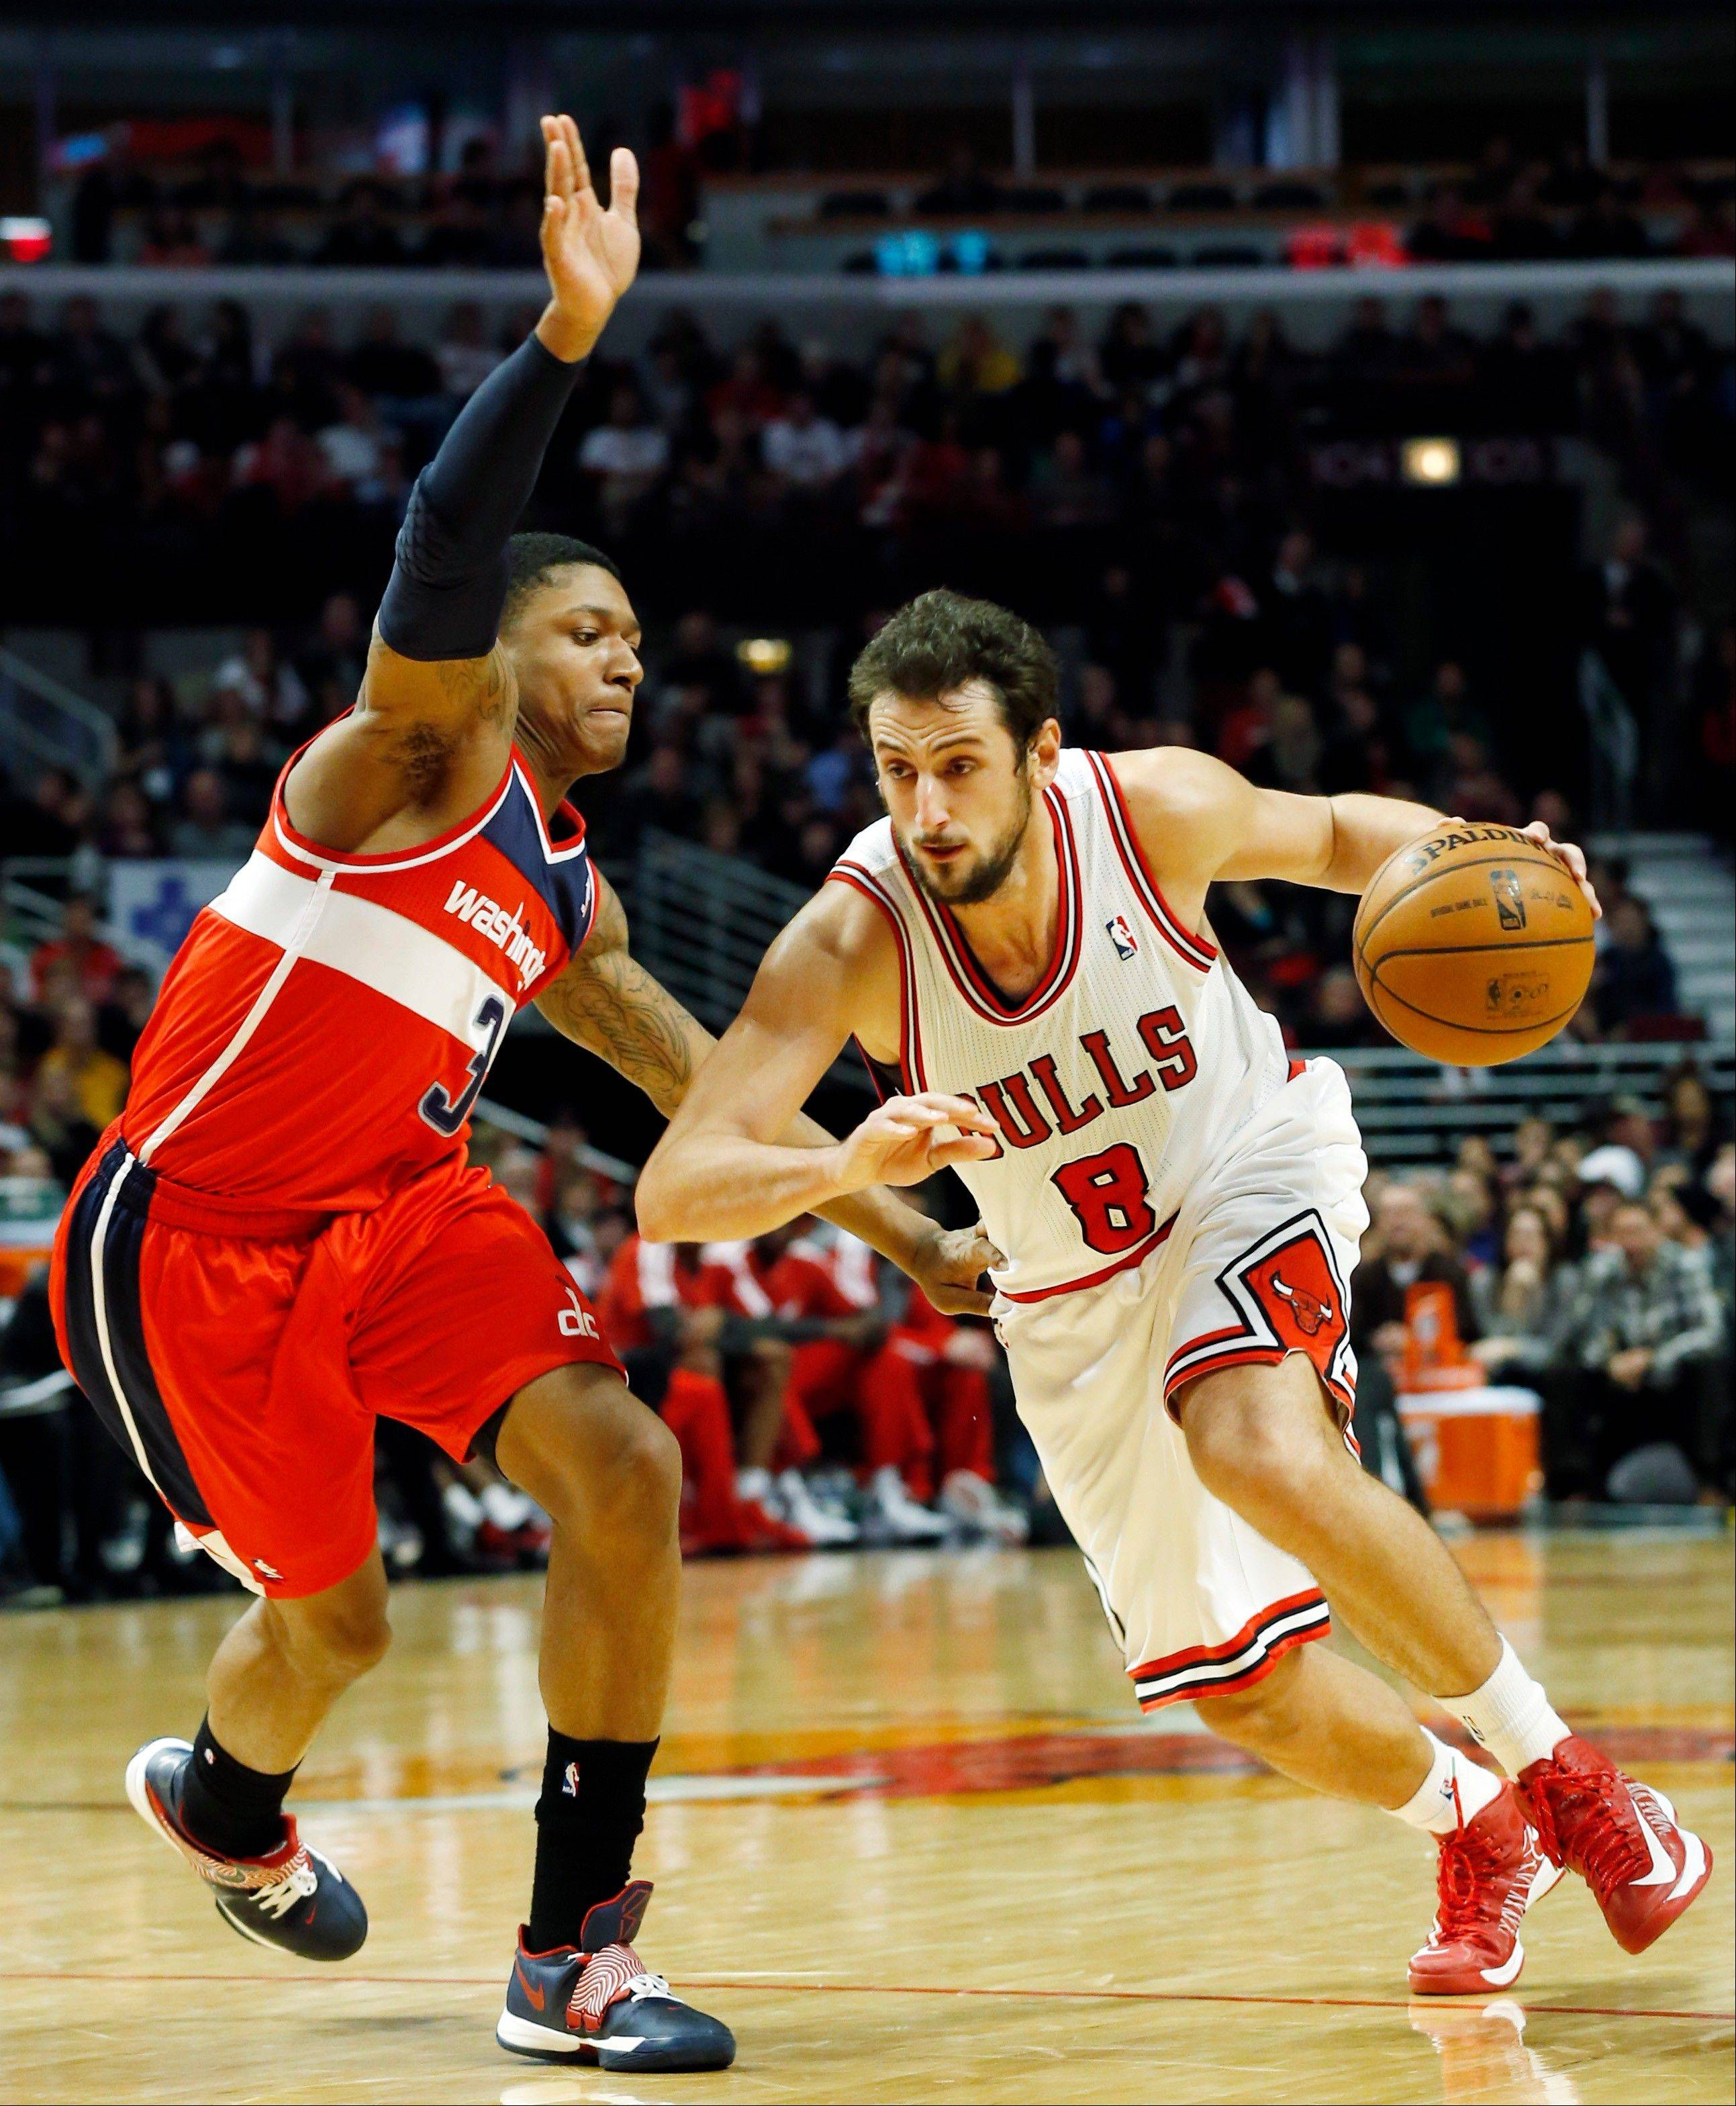 Chicago Bulls guard Marco Belinelli, right, of Italy, drives to the basket as Washington Wizards guard Bradley Beal during the second half of an NBA basketball game in Chicago on Saturday, Dec. 29, 2012. The Bulls won 87-77.